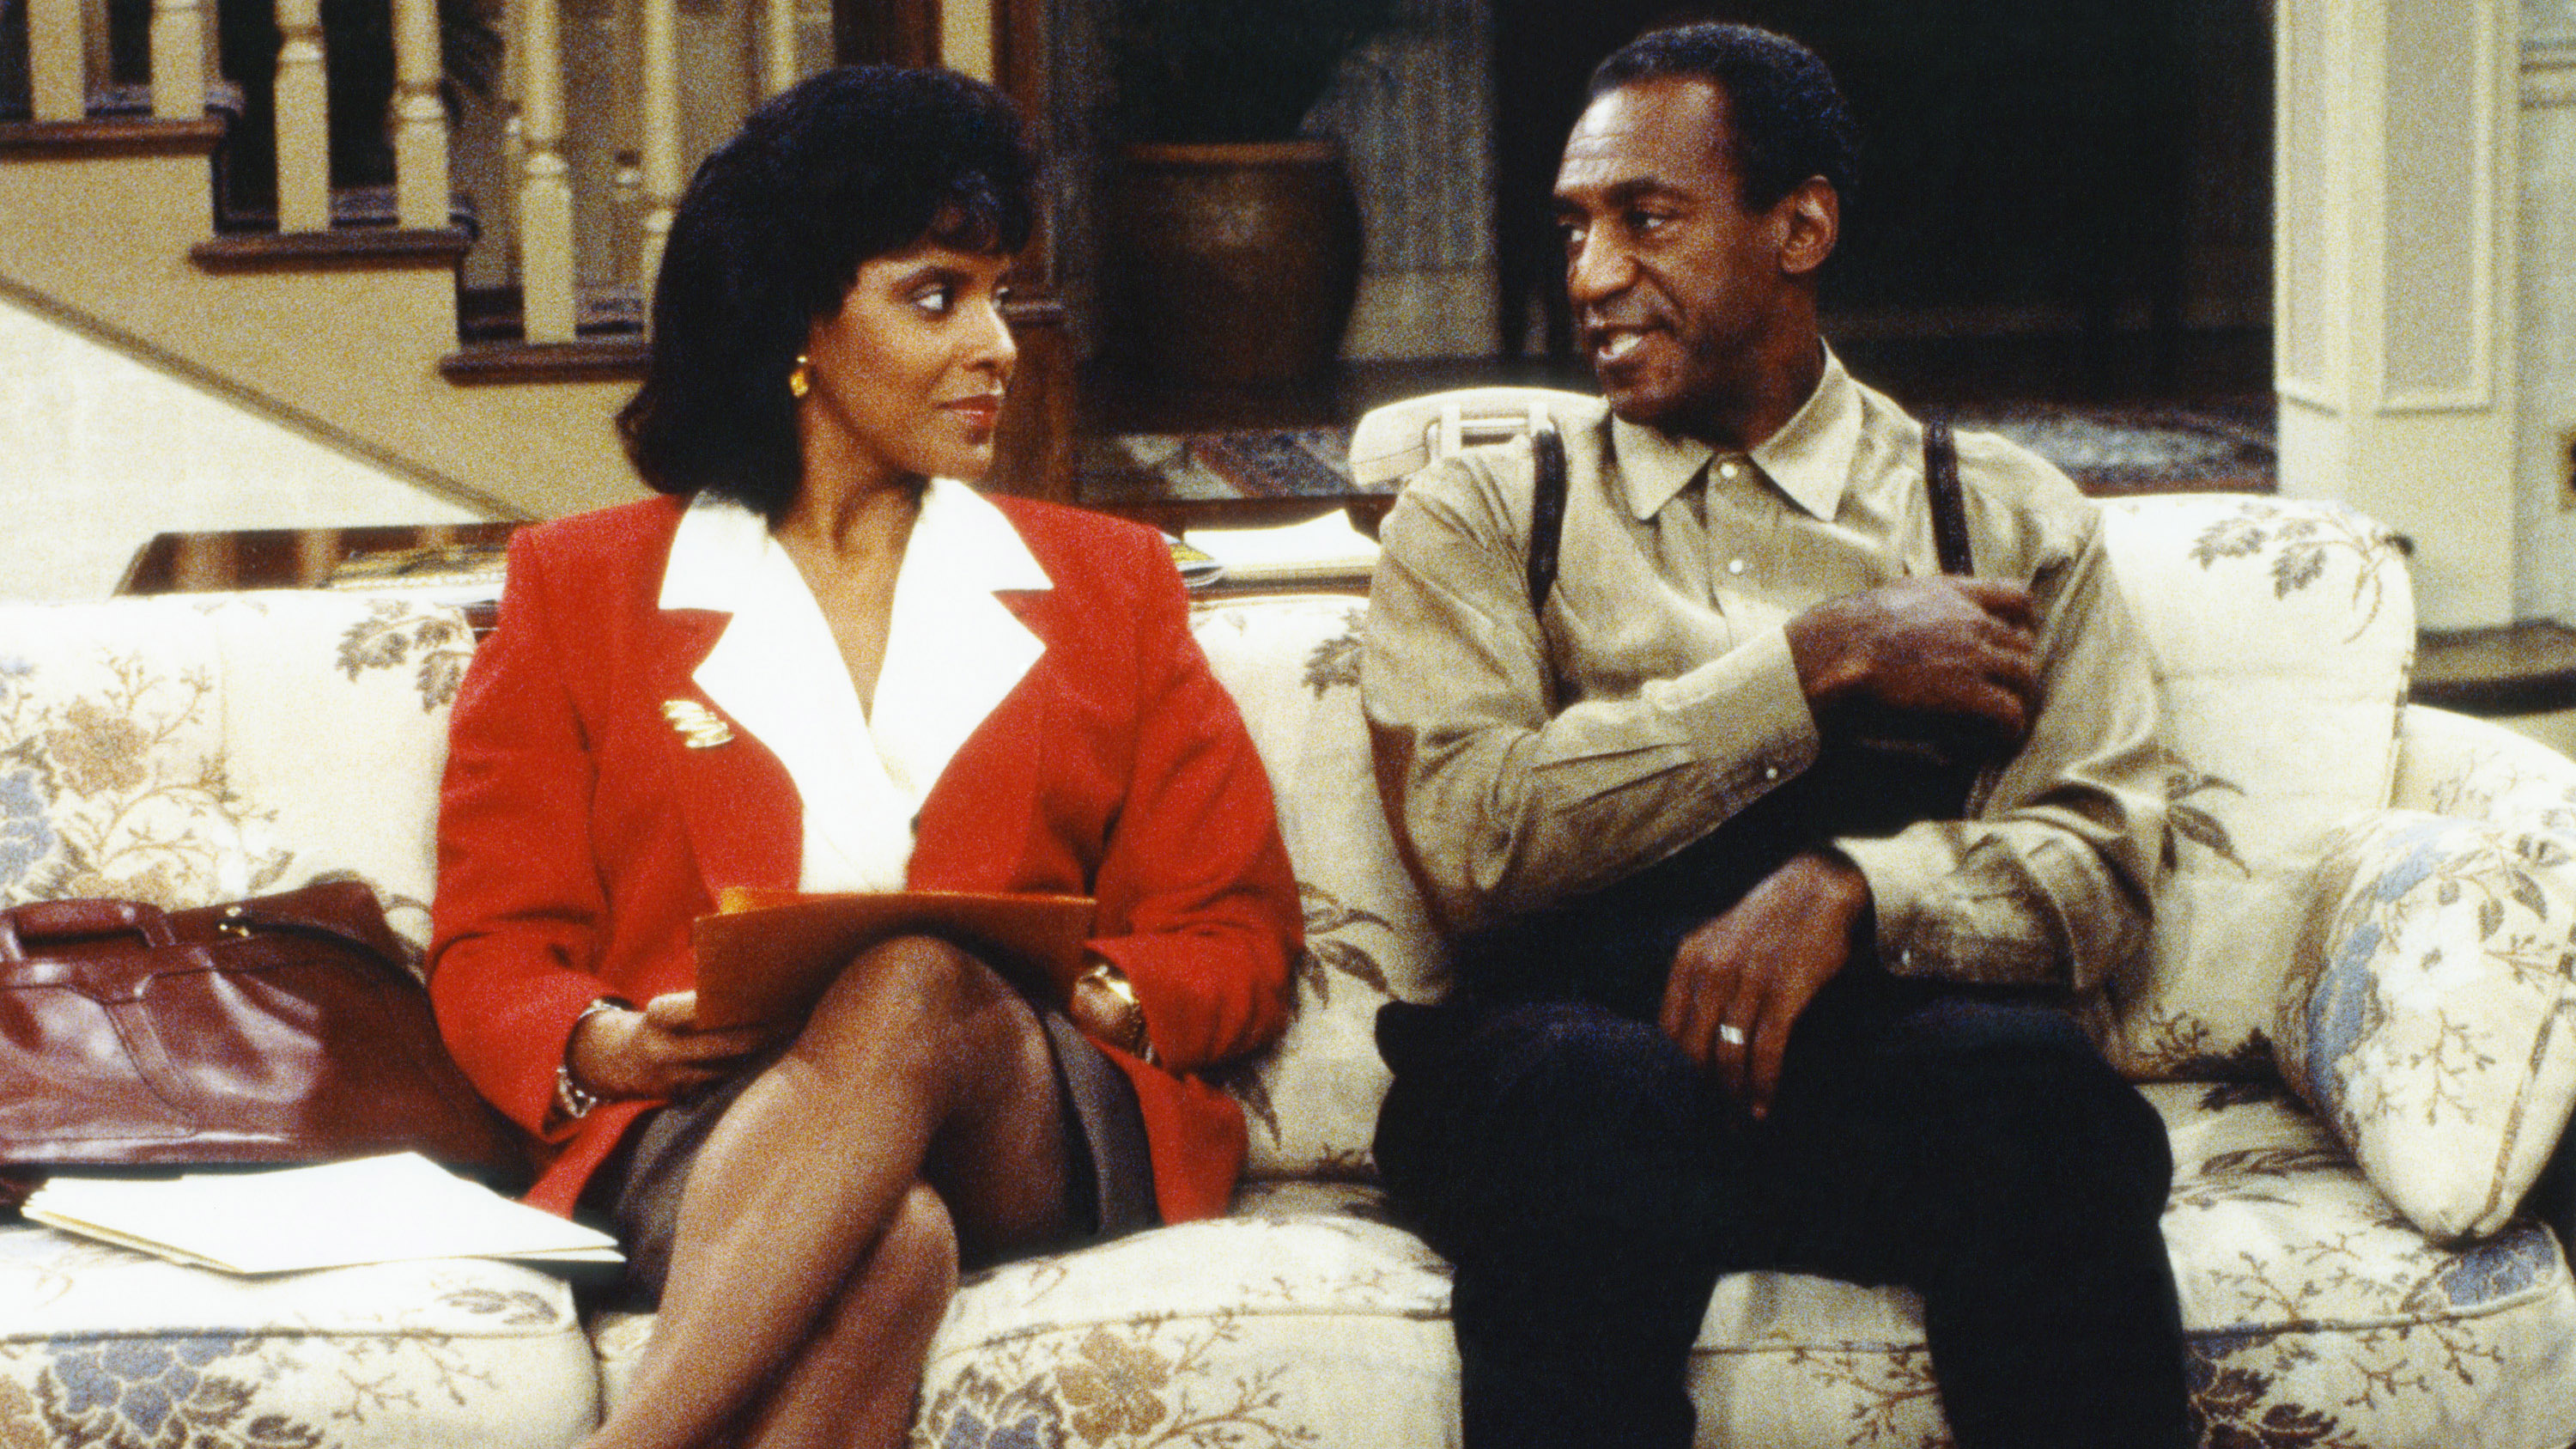 Phylicia Rashad celebrates Bill Cosby's sentence being overturned